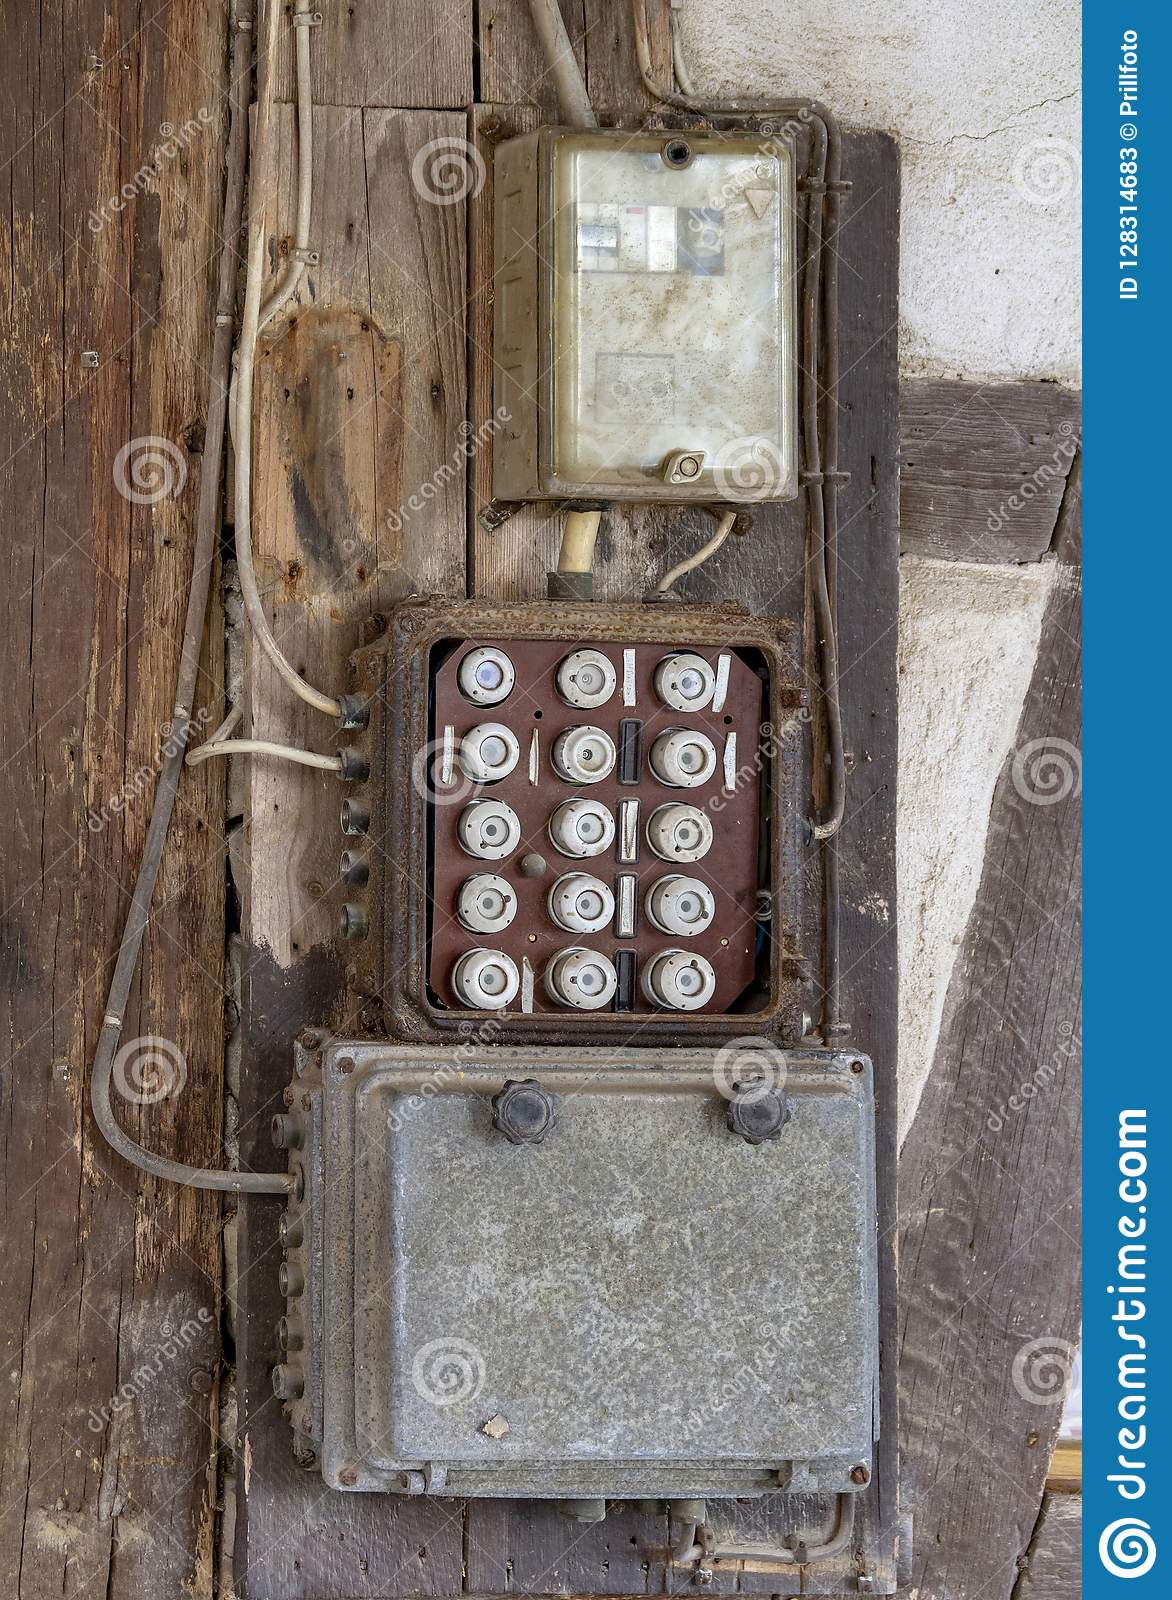 historic electrical fuse box